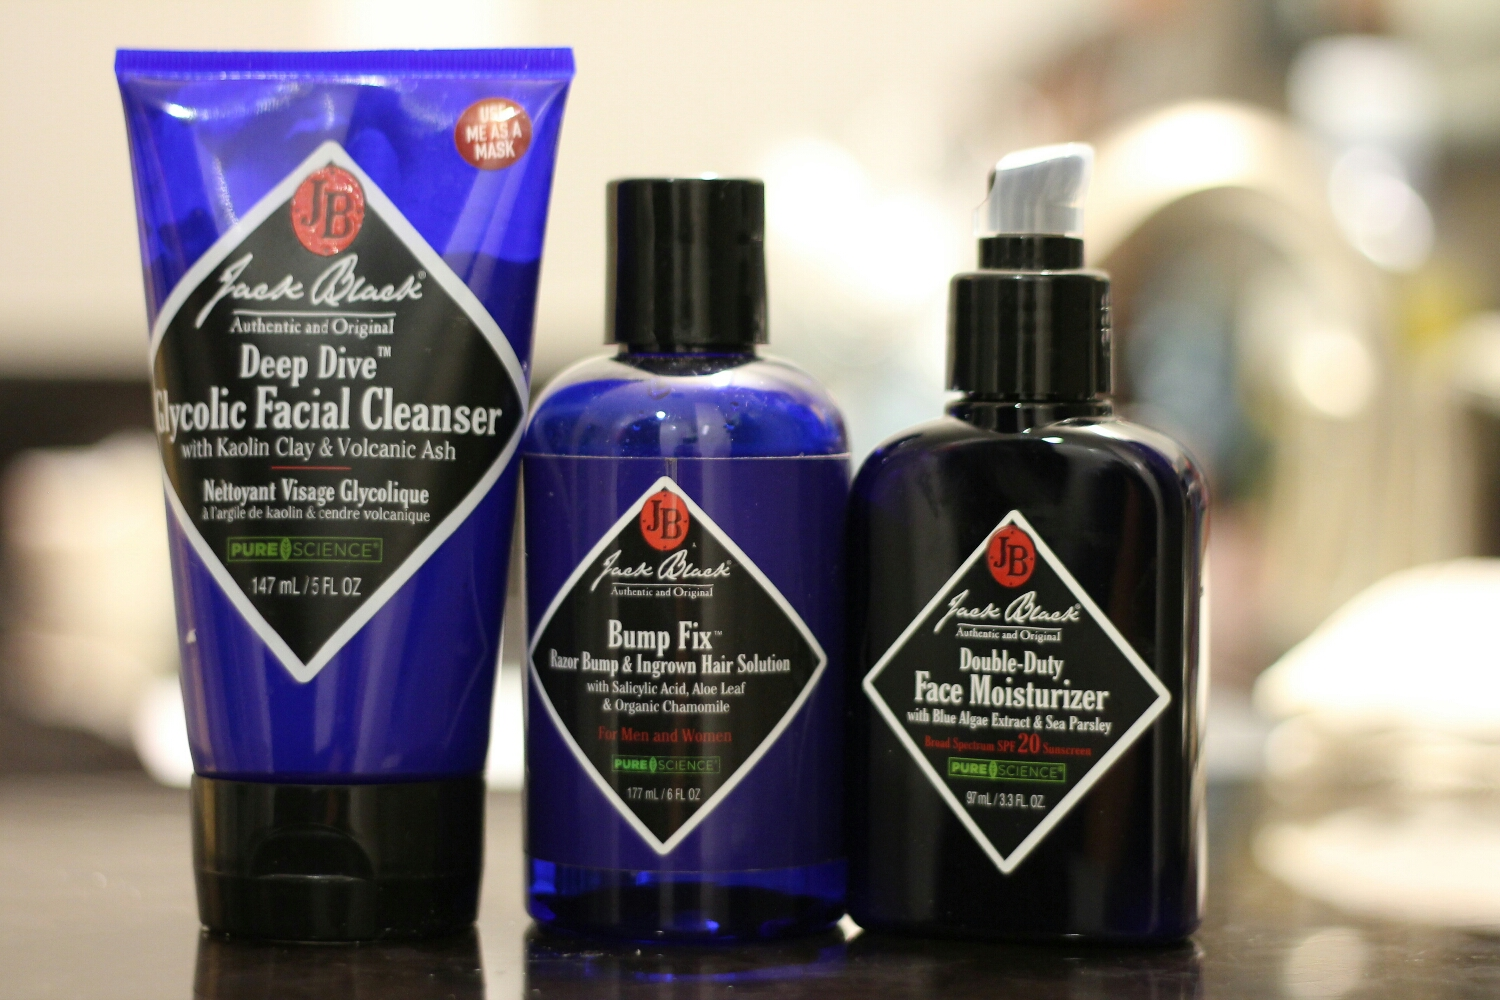 Jack Black Facial Cleanser, Bump fix, & Moisturizer.